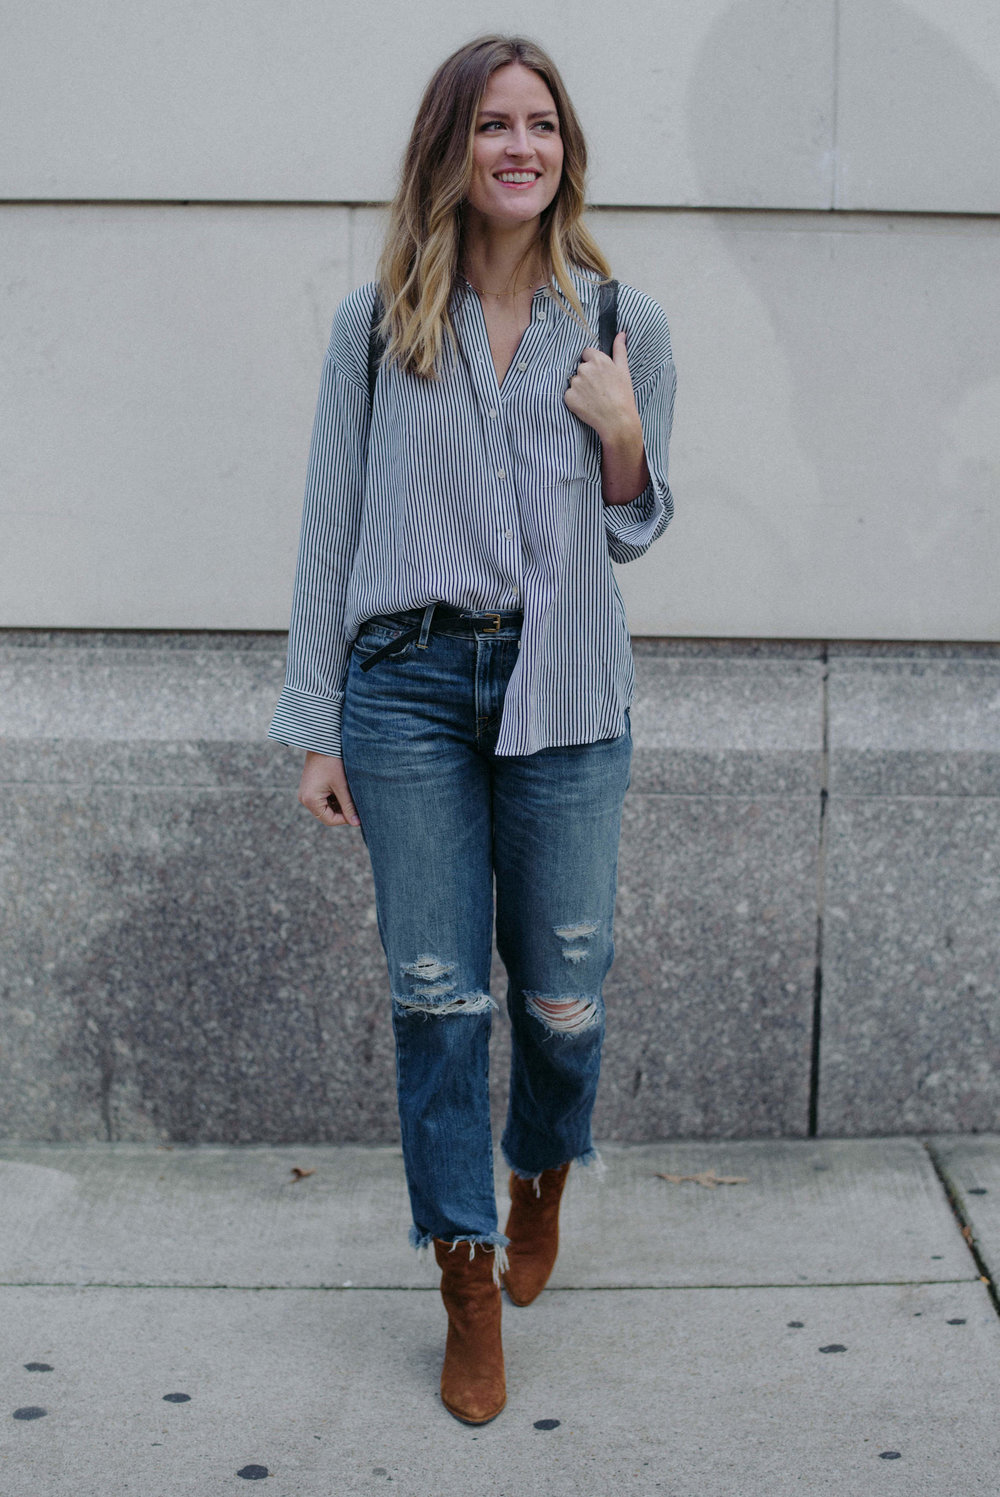 Distressed denim and a button down  // A Week Of  Nashville-Chic Ethical Outfits With Jordan Soderholm, Fashion Director At ABLE on The Good Trade